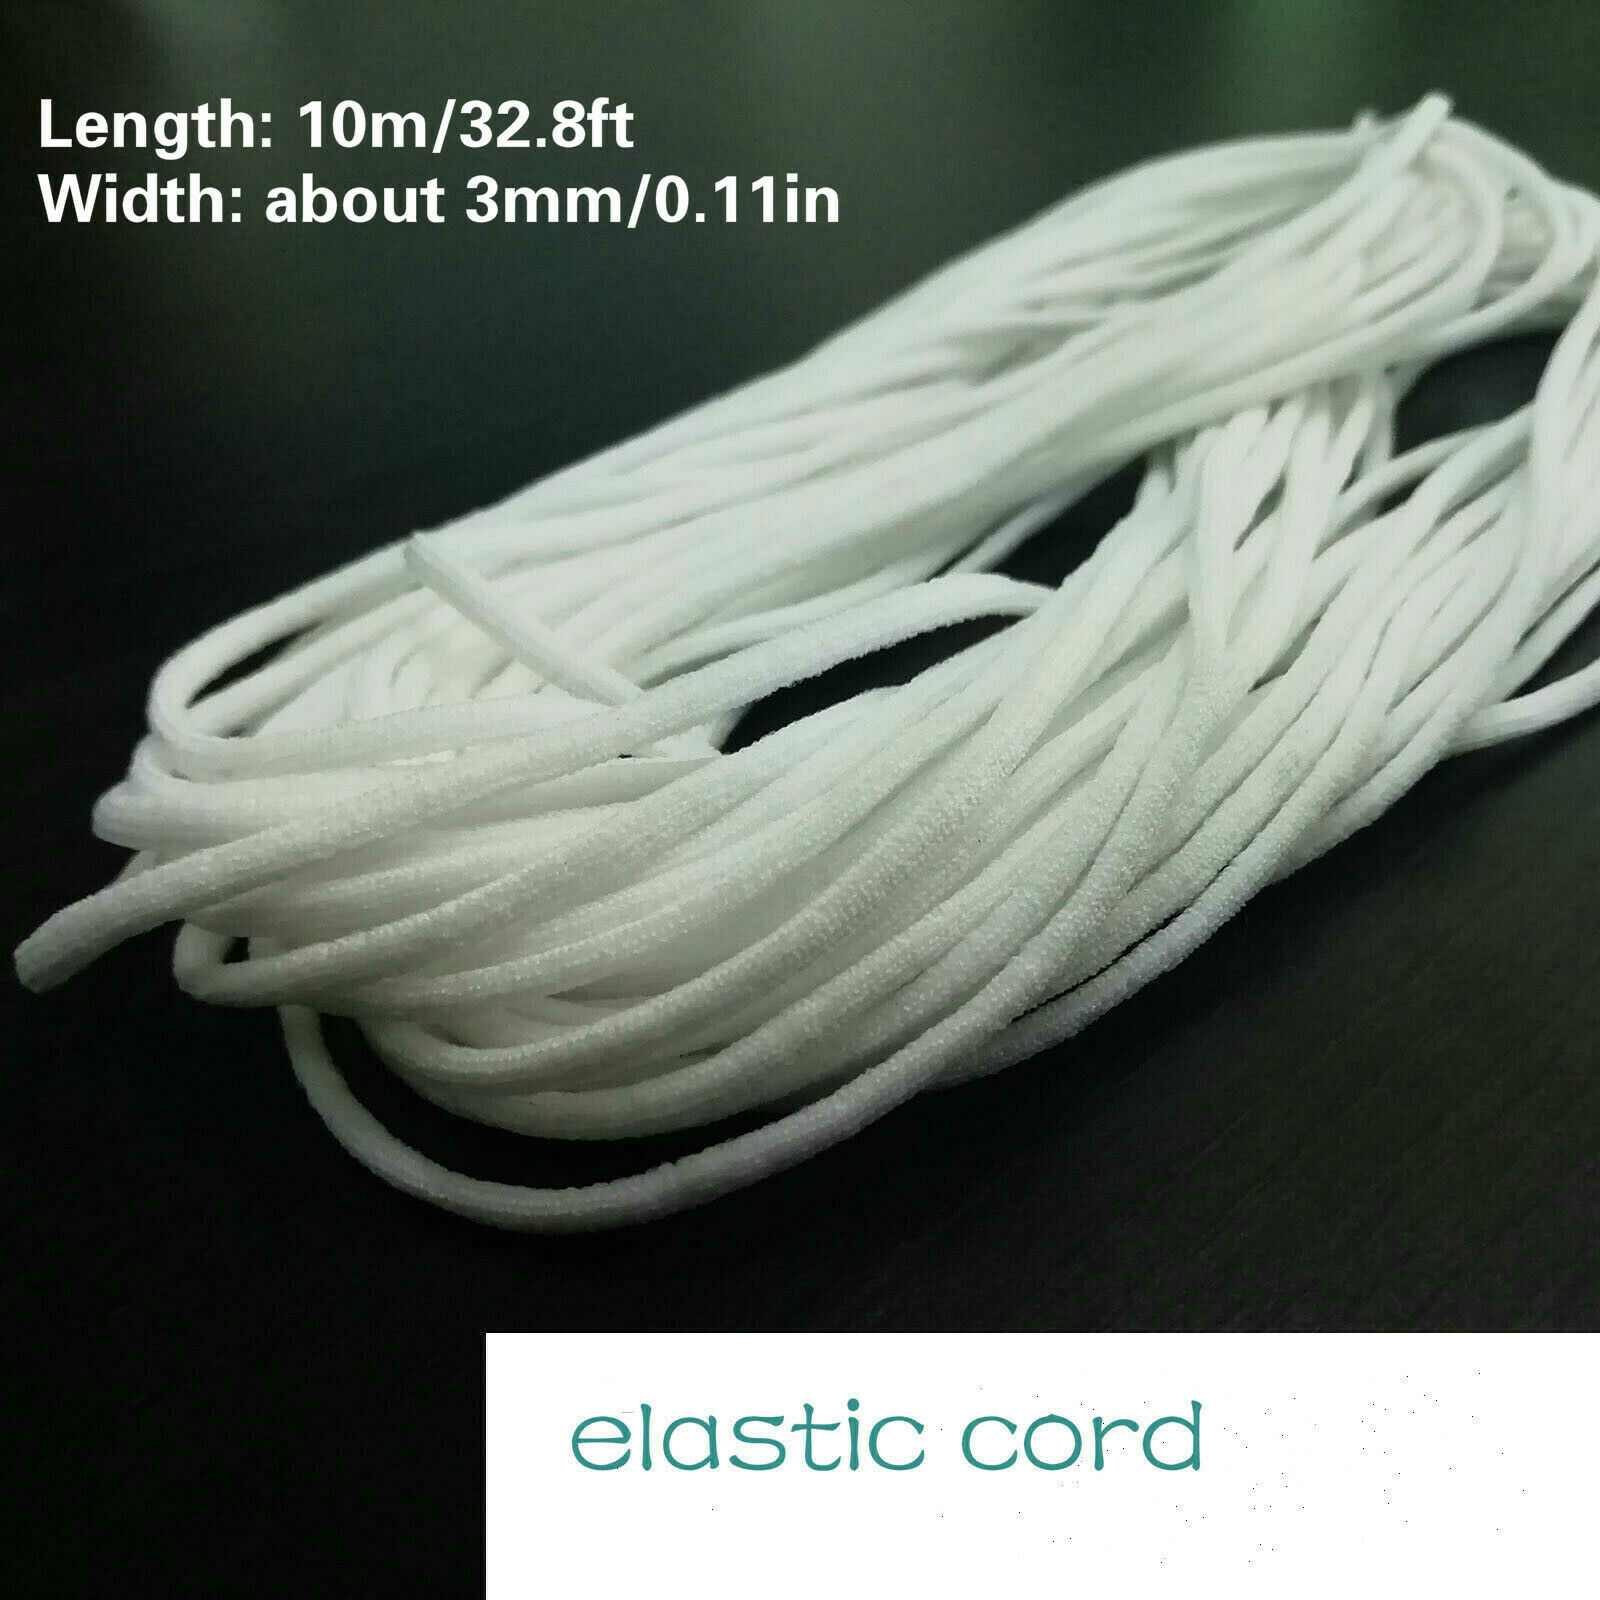 3mm Round Elastic Band Cord Ear Hanging Sewing Crafts DIY Clothing 10m Length